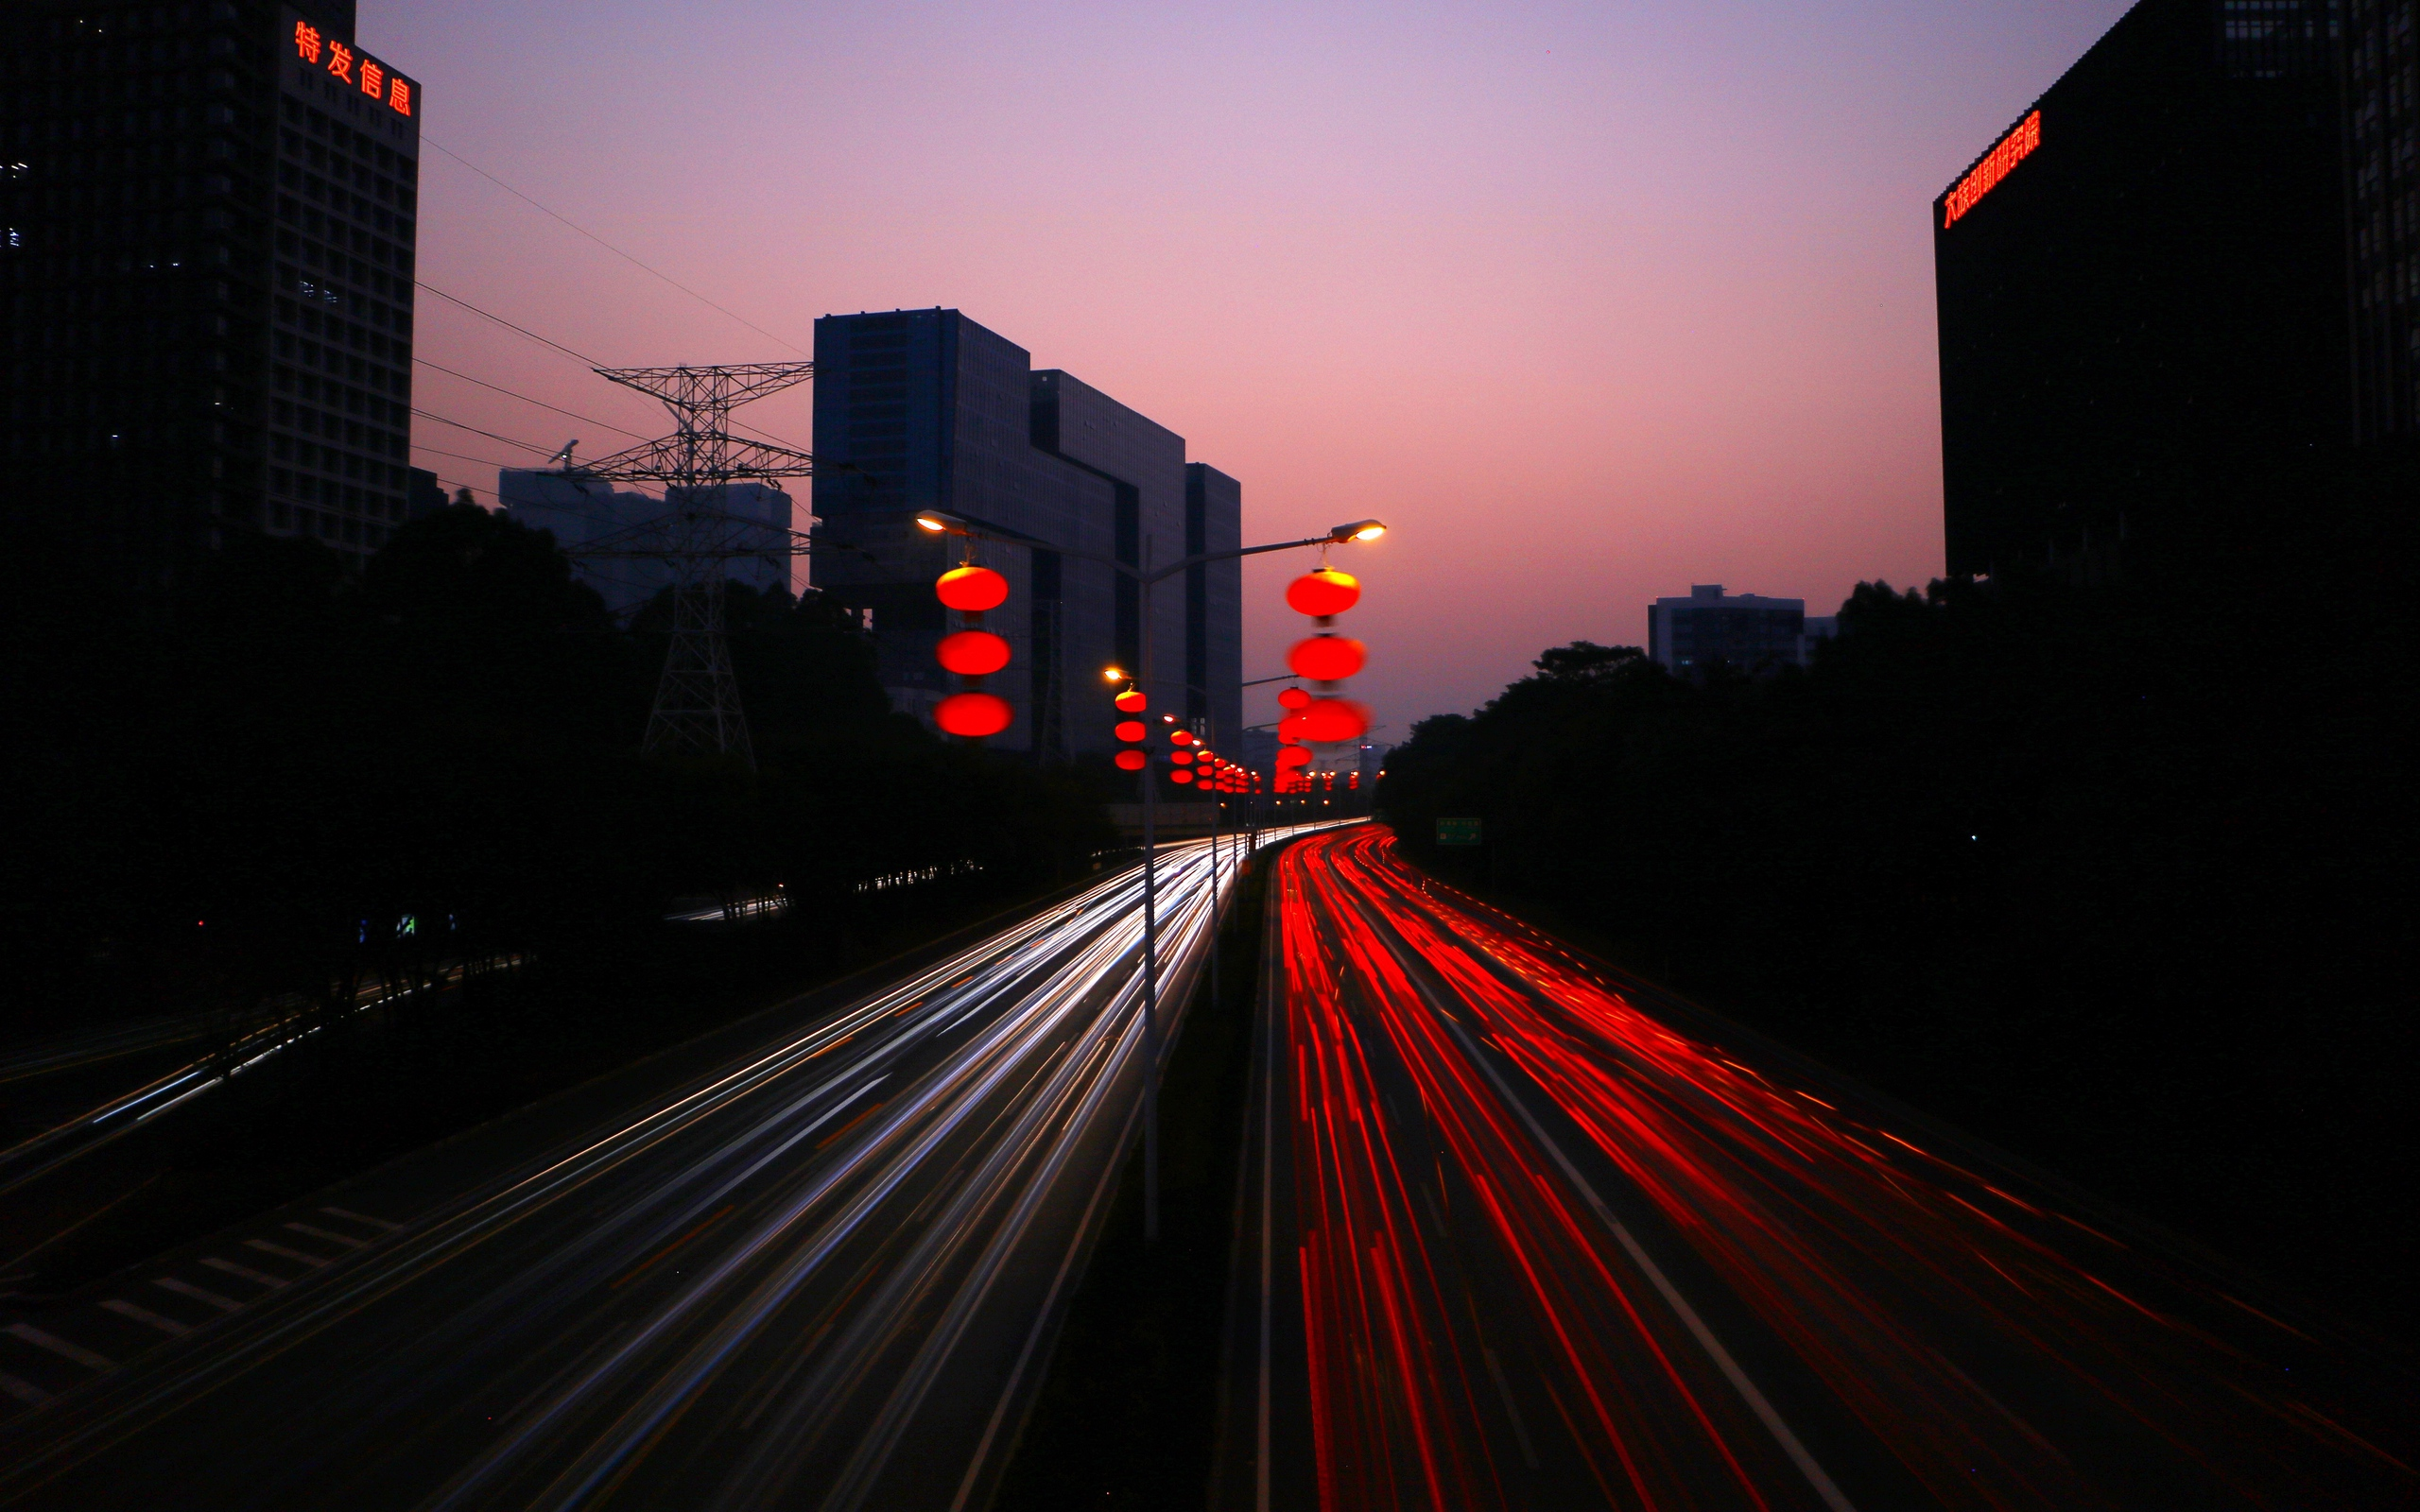 Wallpaper of Road, Night City, Light, Traffic, China background & HD image